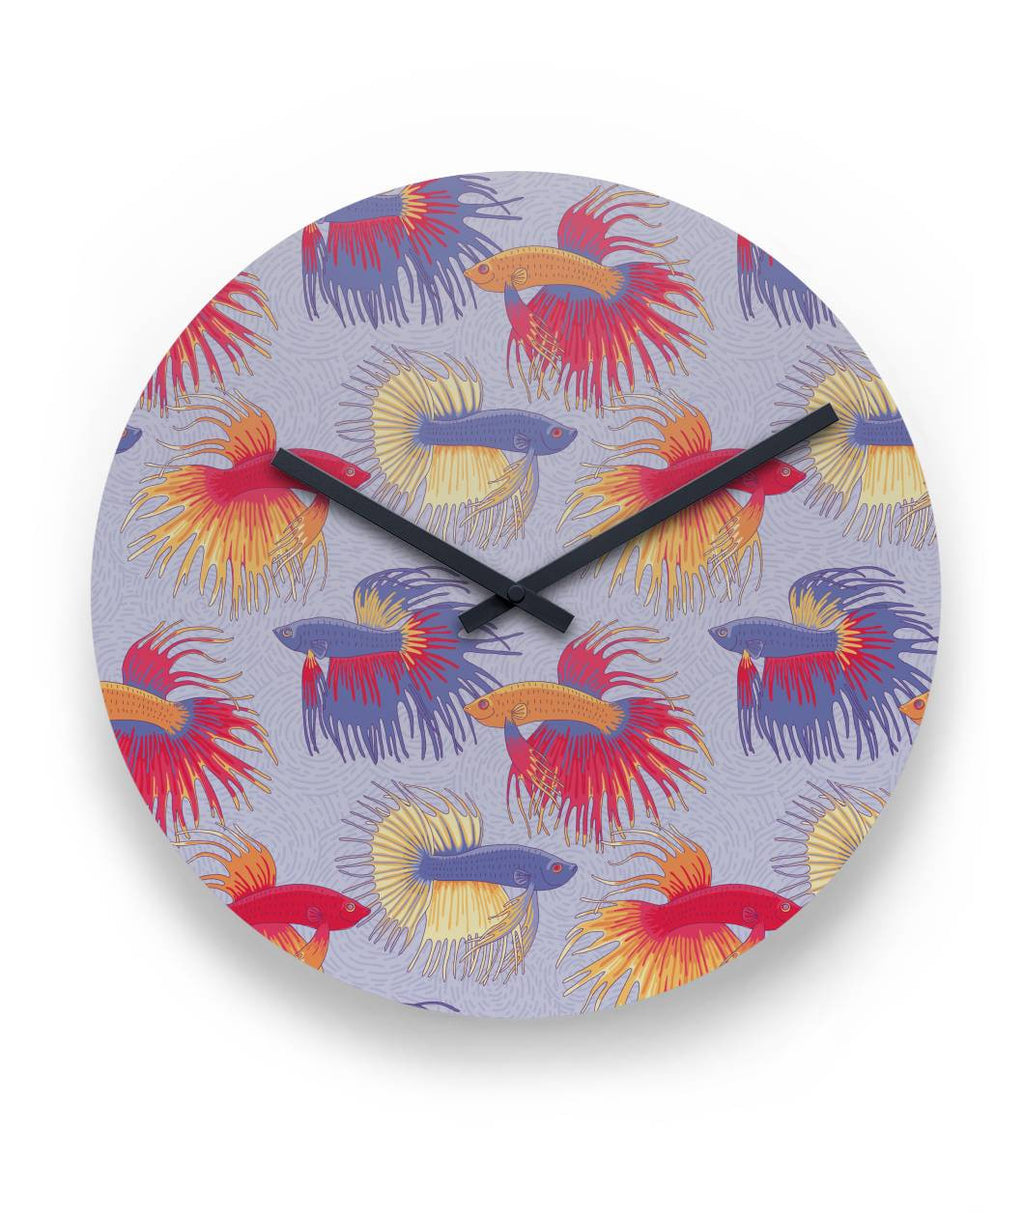 Clocks flowingfins colorful betta fish pattern clock round wall clock amipublicfo Images